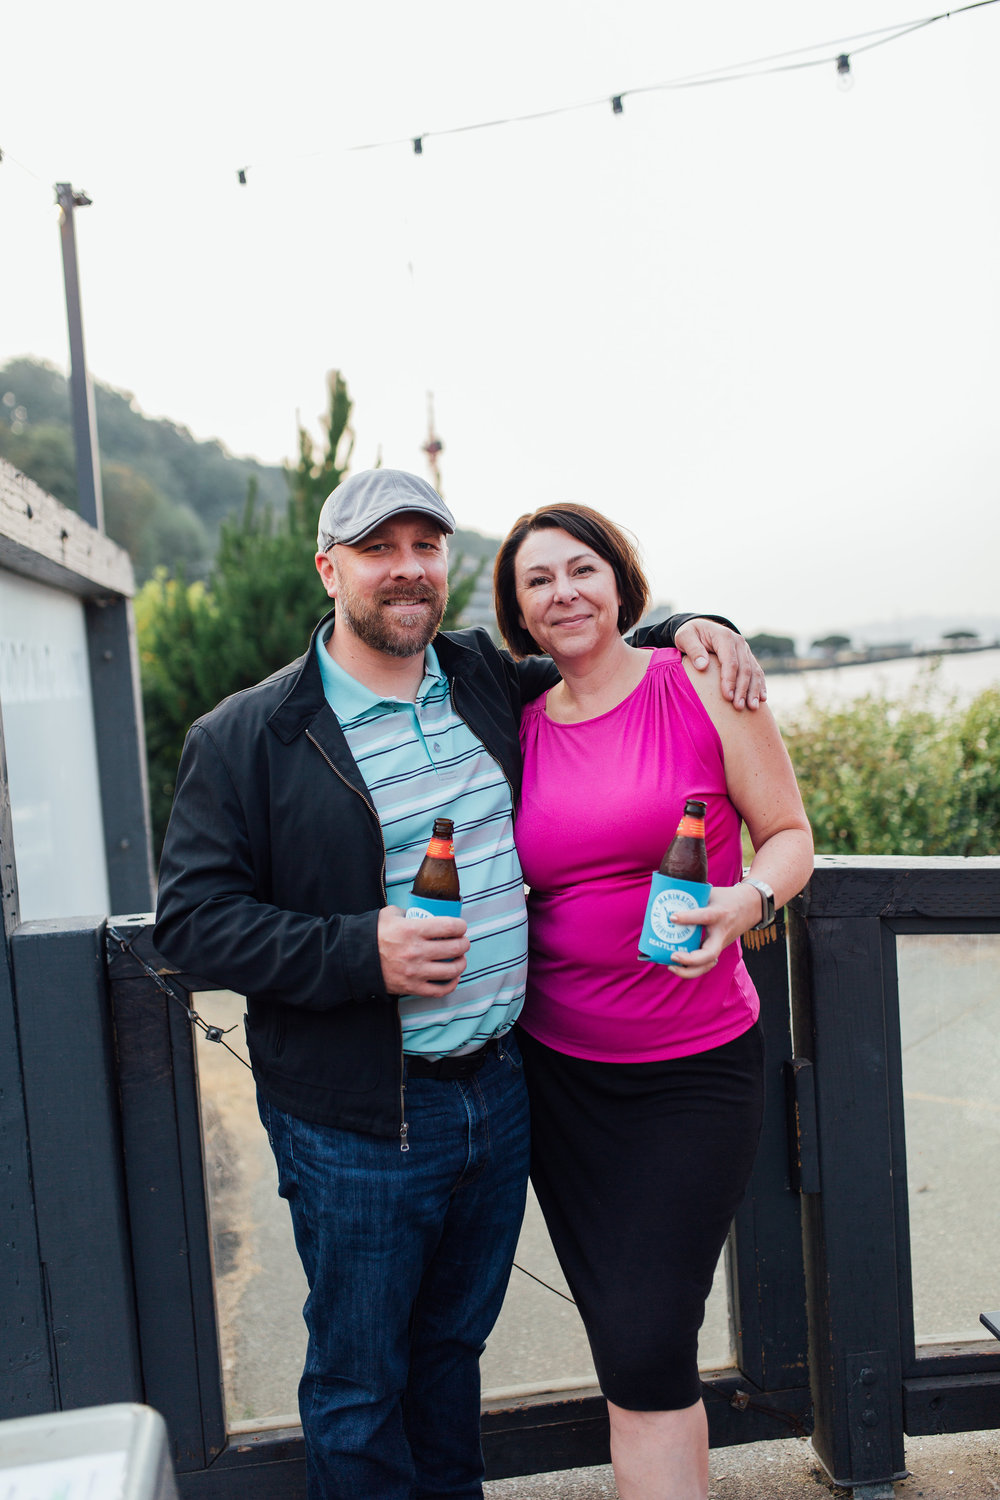 SeattleEventAug2018(69of238).jpg